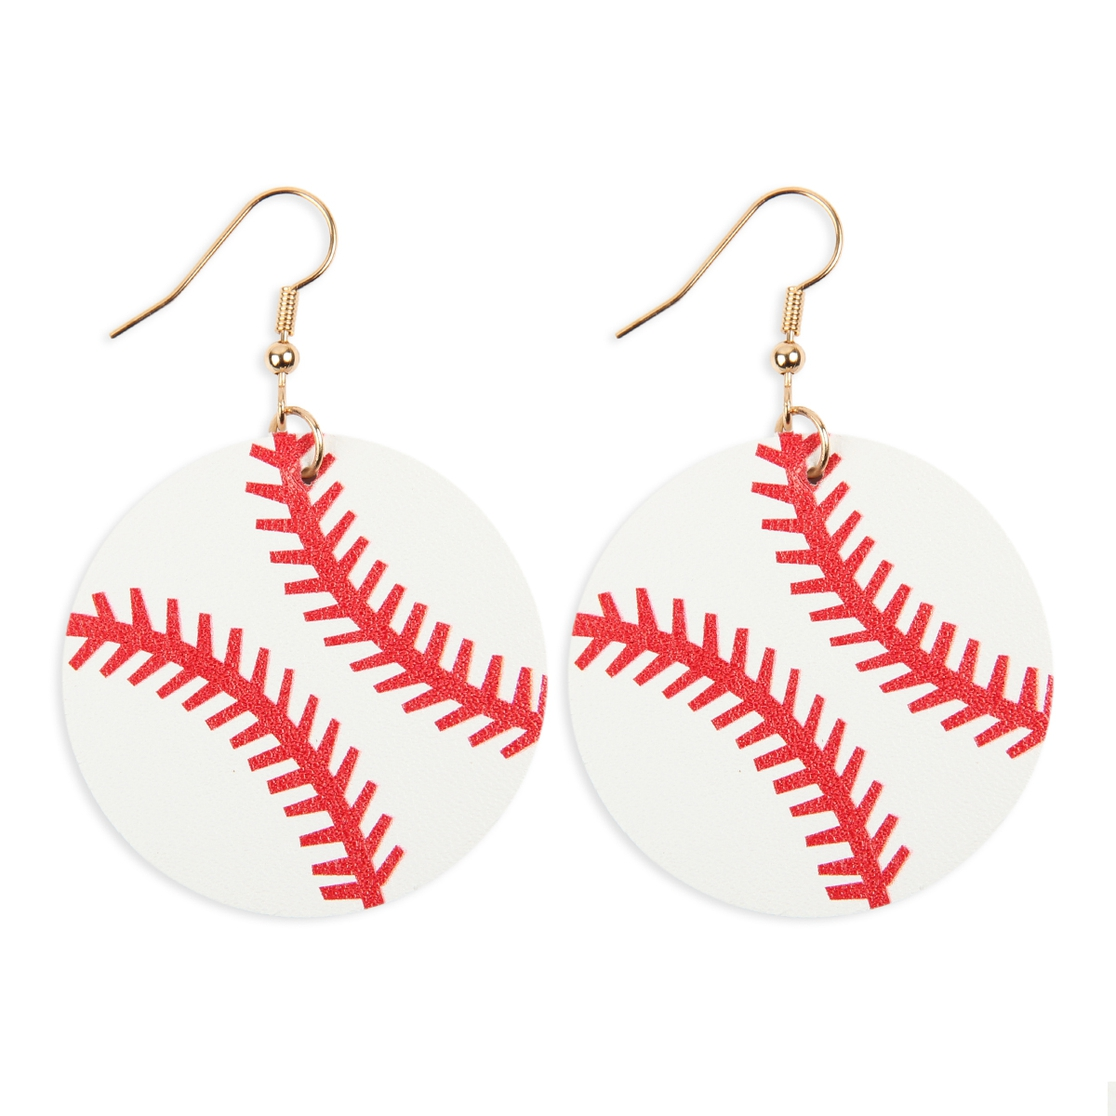 SPORTS LEATHER ROUND DROP EARRINGS - orangeshine.com